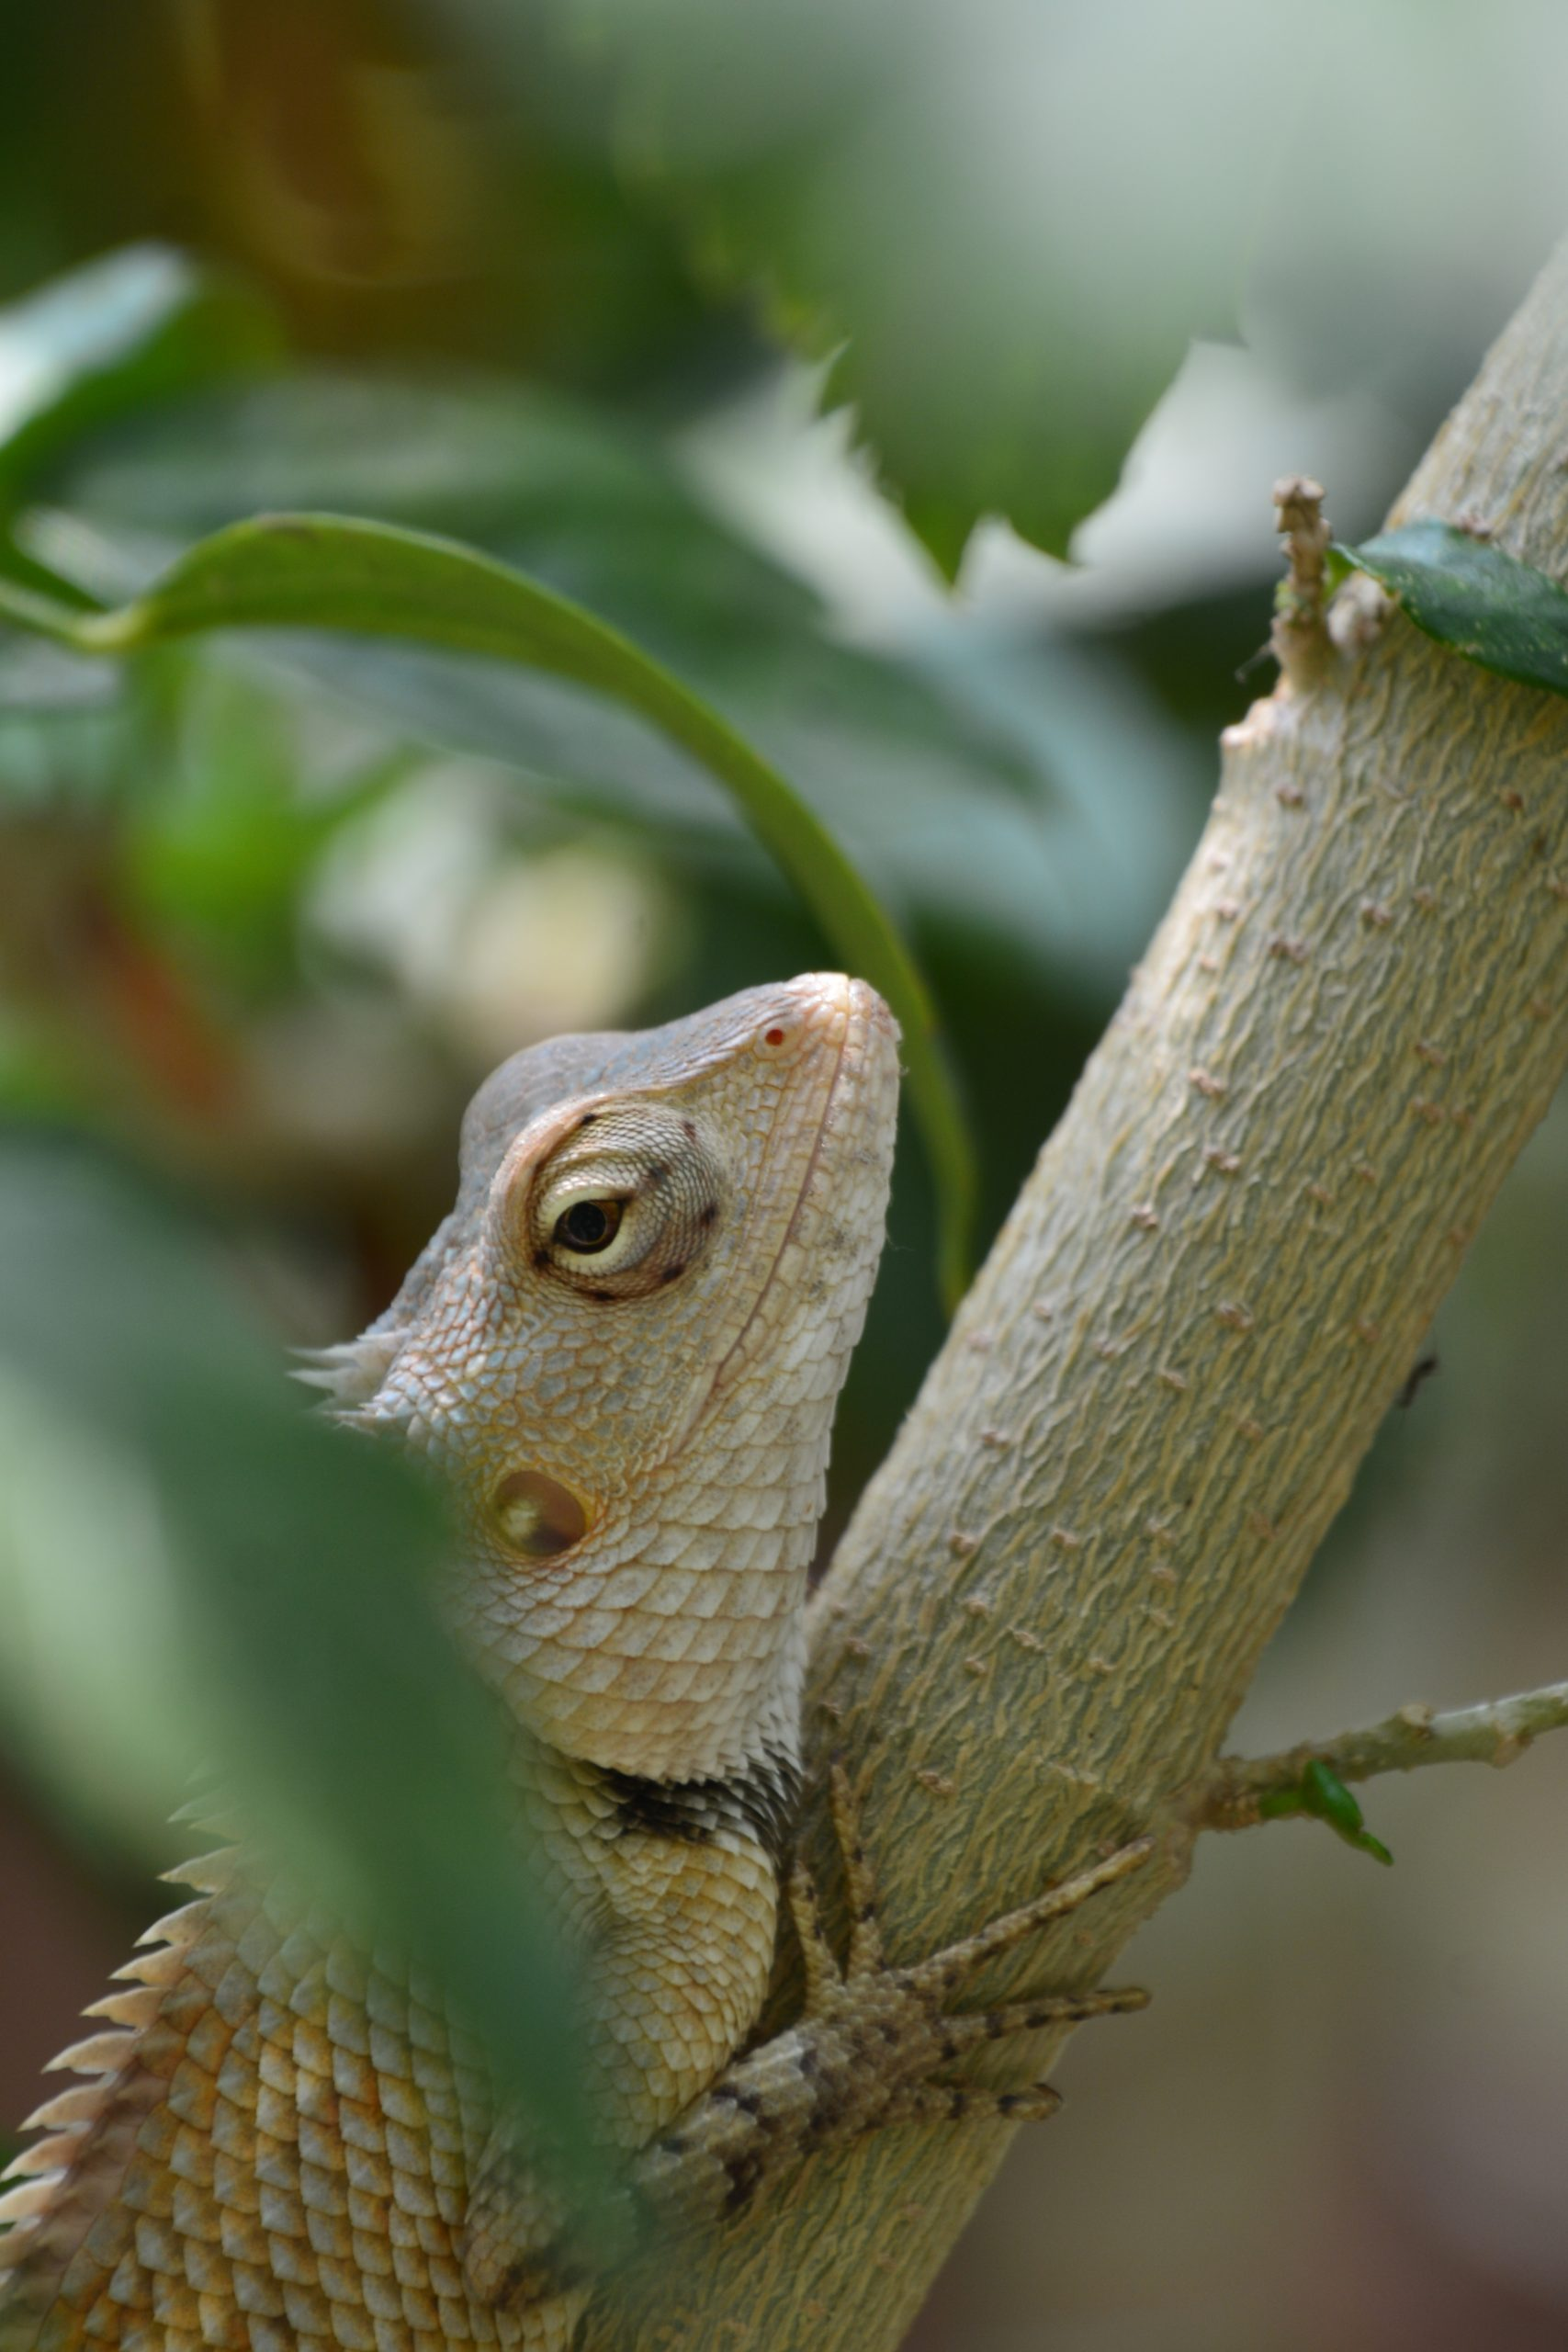 Reptile clinging on a tree branch